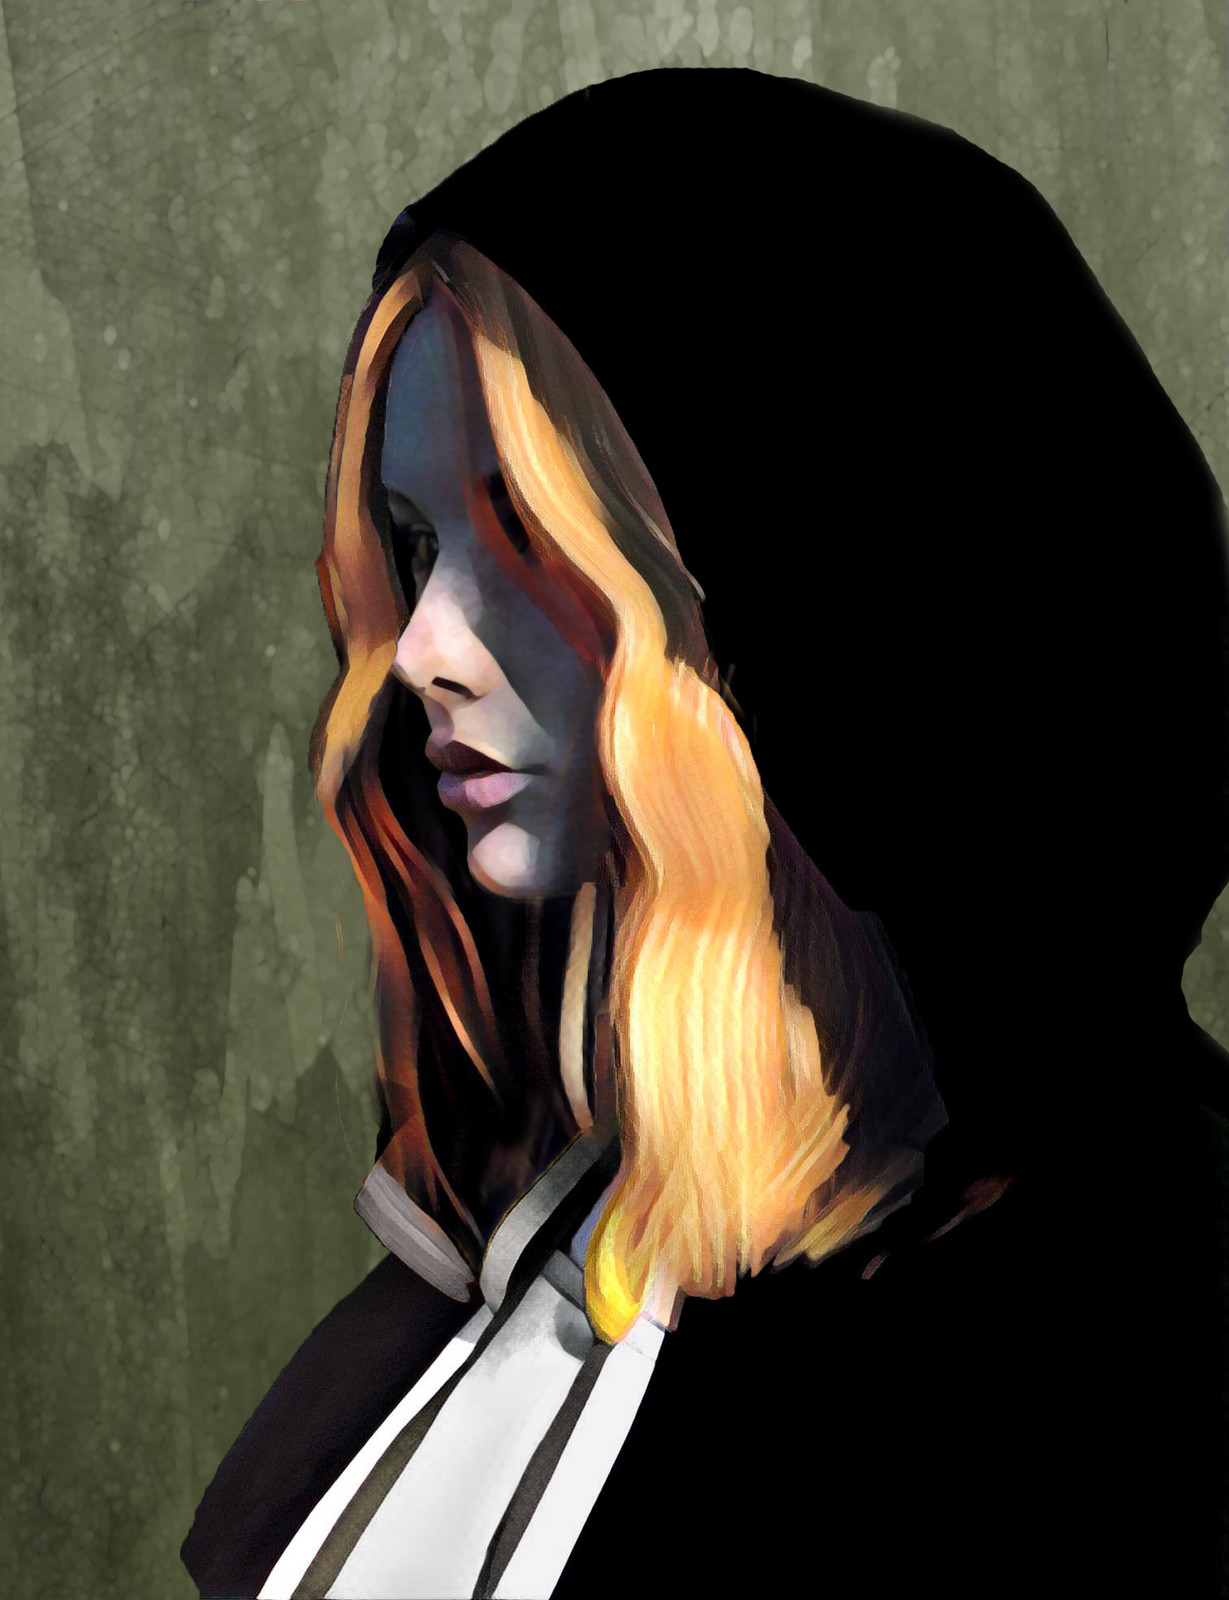 Portrait Study - Cloaked